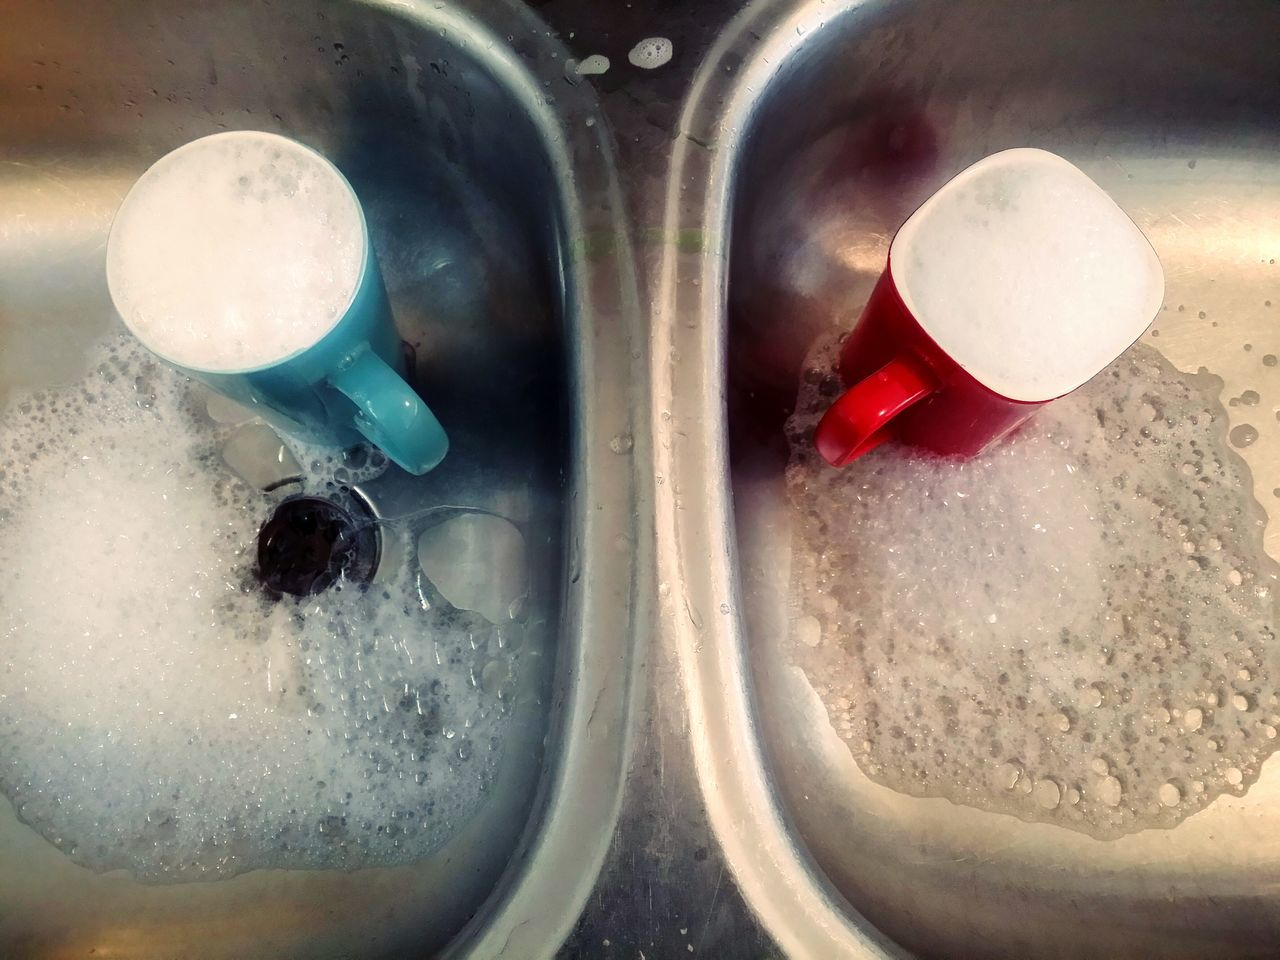 Close-up Good Morning! Indoors  Water Round Square Hot Cold Hot Cold Red Blue His Hers Sinks Opposites Attract New Zealand Home My House Domestic Domestic Life Kitchen Coffee Coffee Mugs Dishes Housework Lieblingsteil